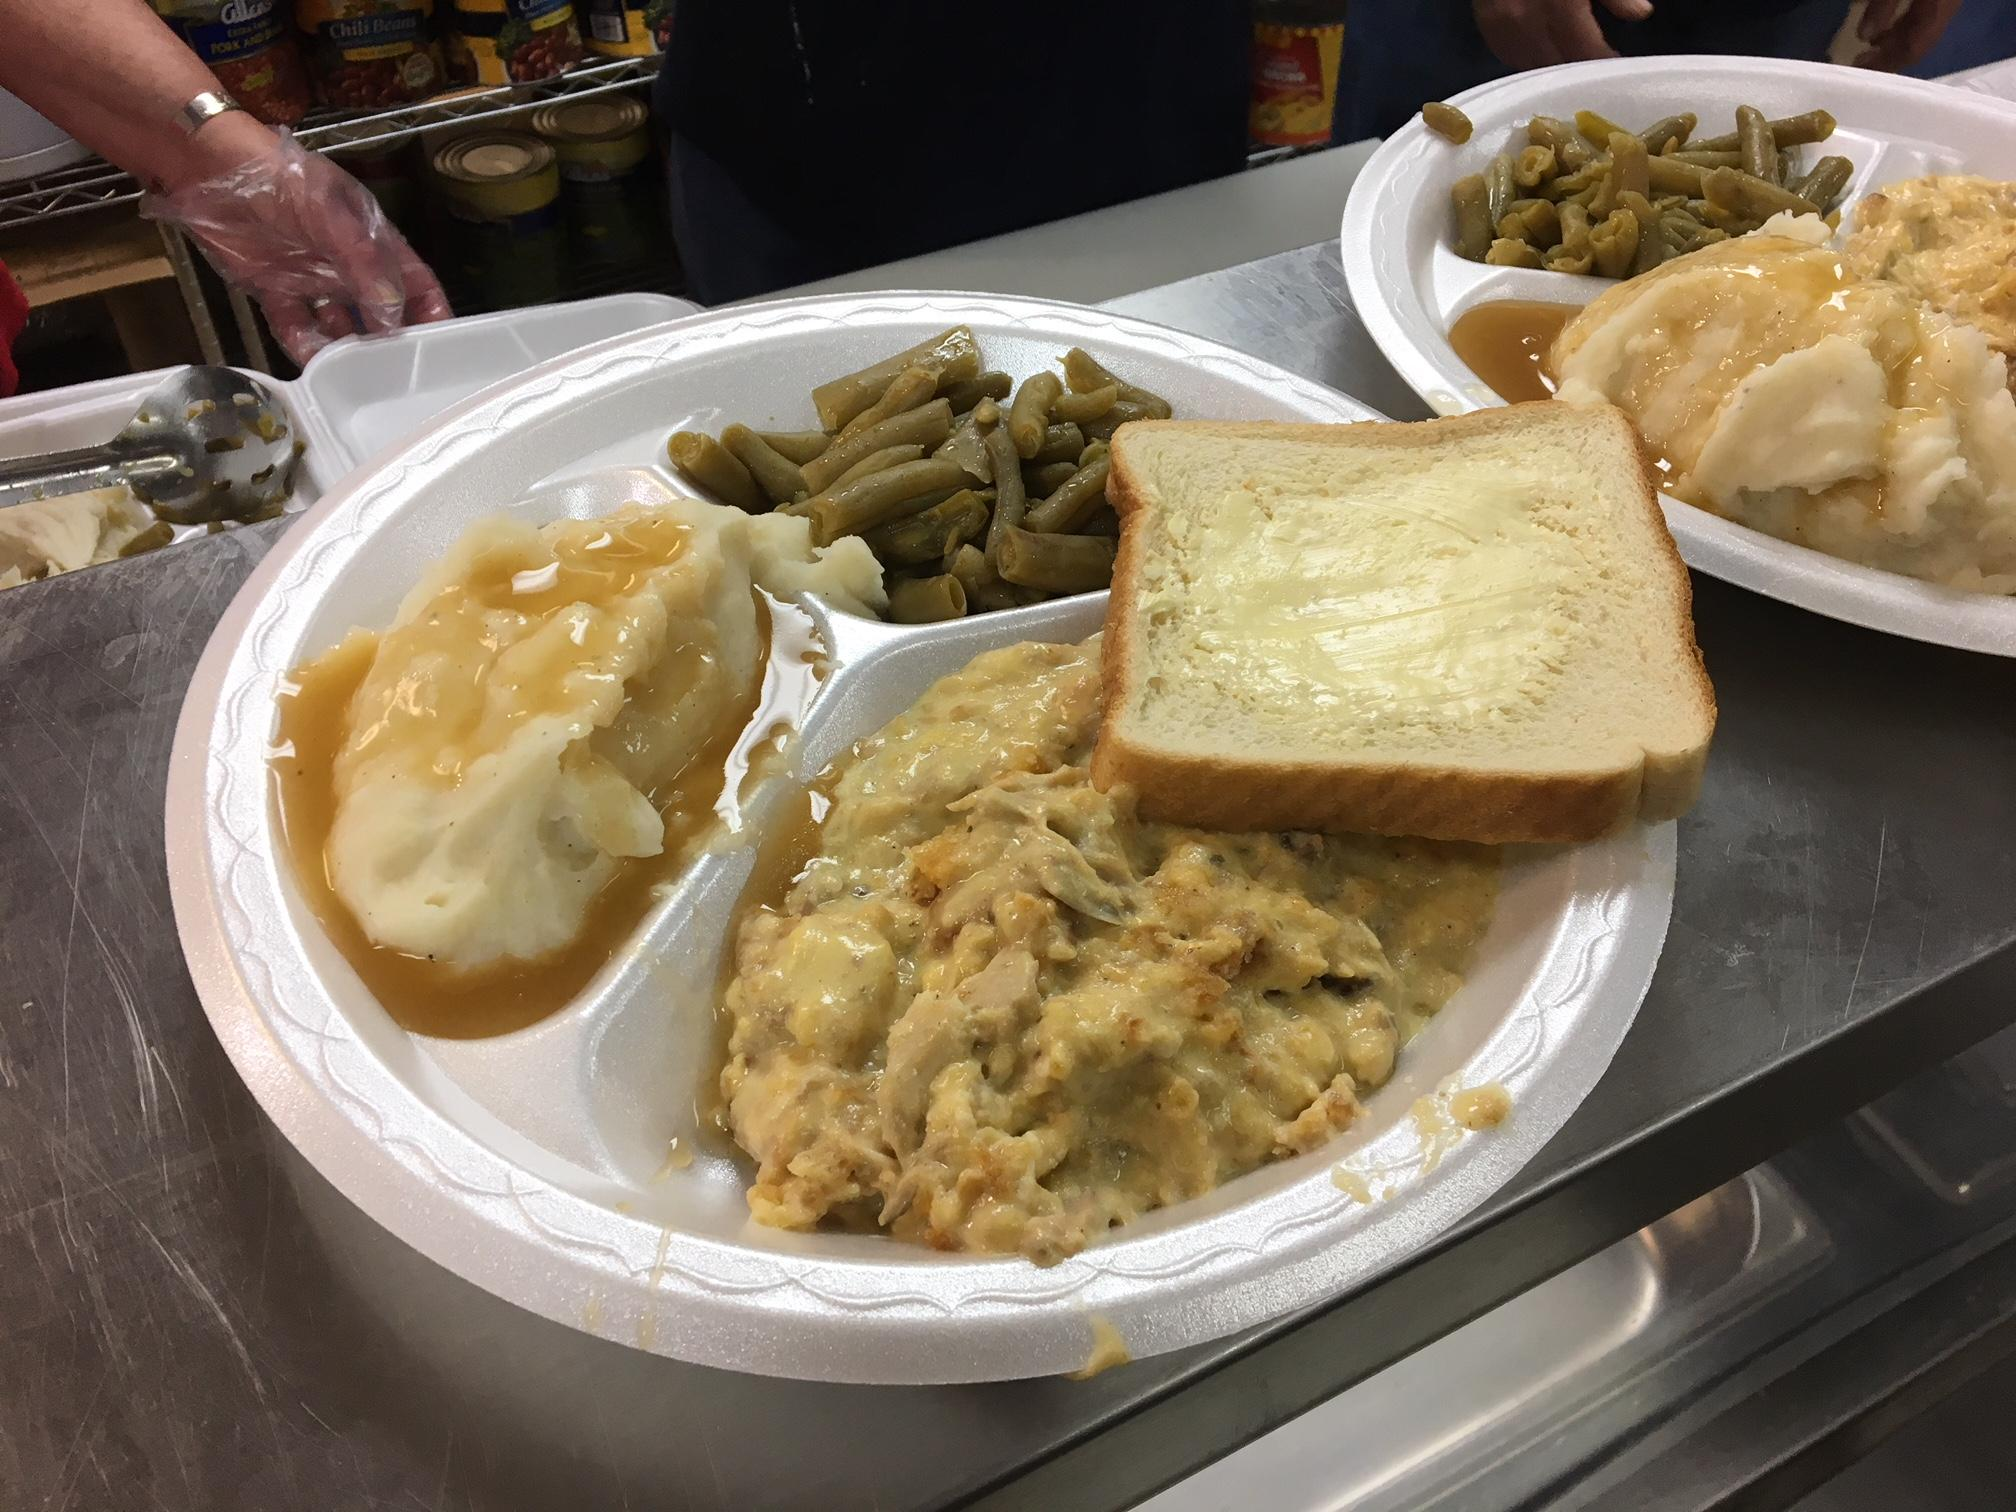 The monthly hot meal is paid for and cooked by the Happy Hour Life Point Group at the Church at Grace Point.{&amp;nbsp;}(Image: WTVC)<p></p>